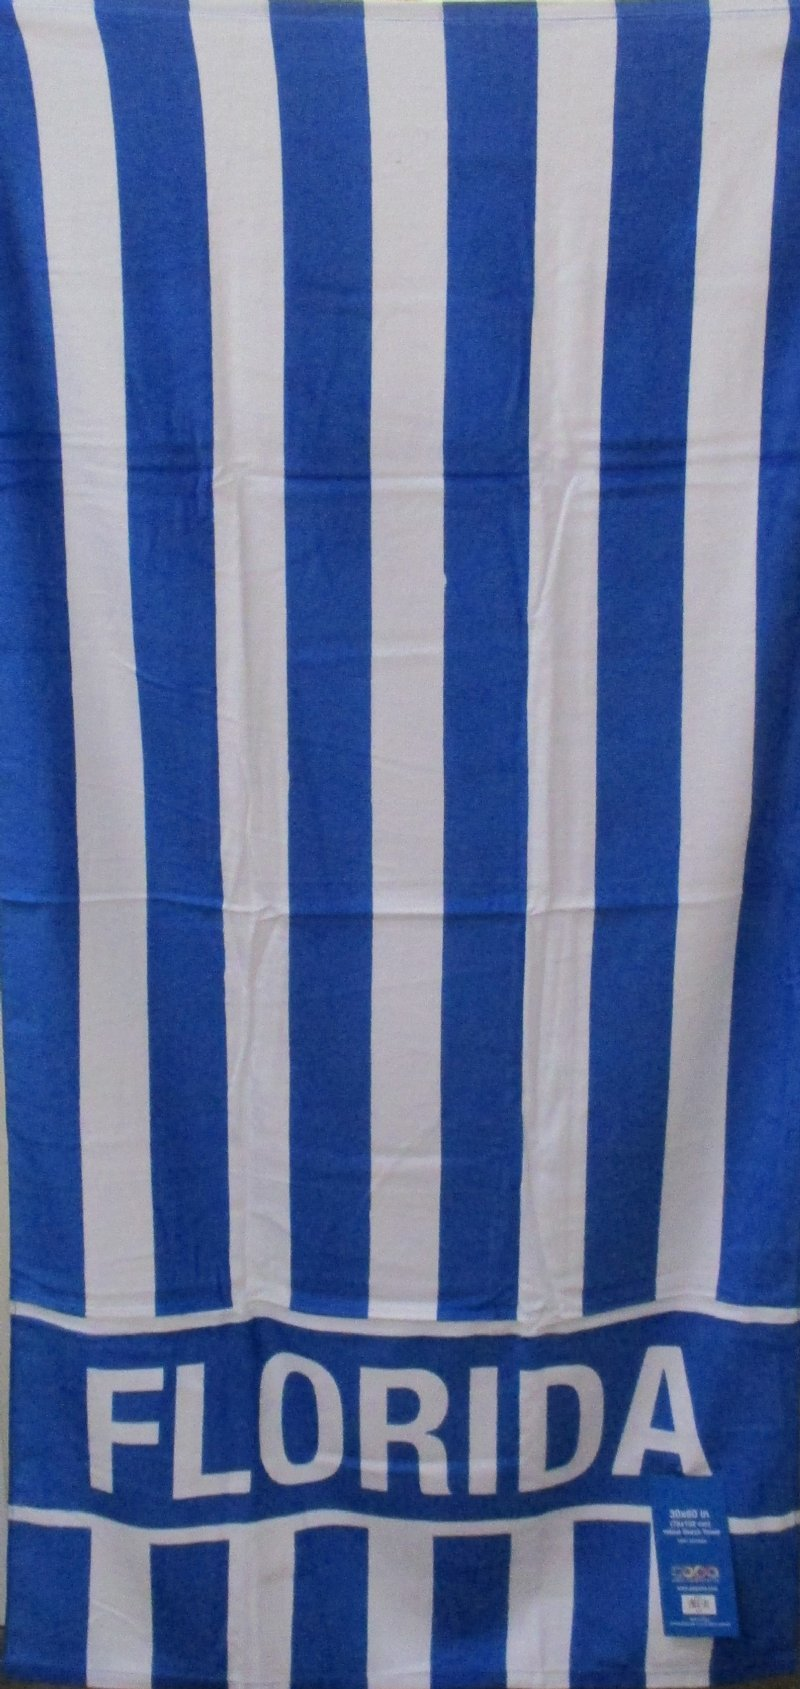 Wholesale Florida Cabana Stripe Print Beach Towels 3 Fiber Reactive